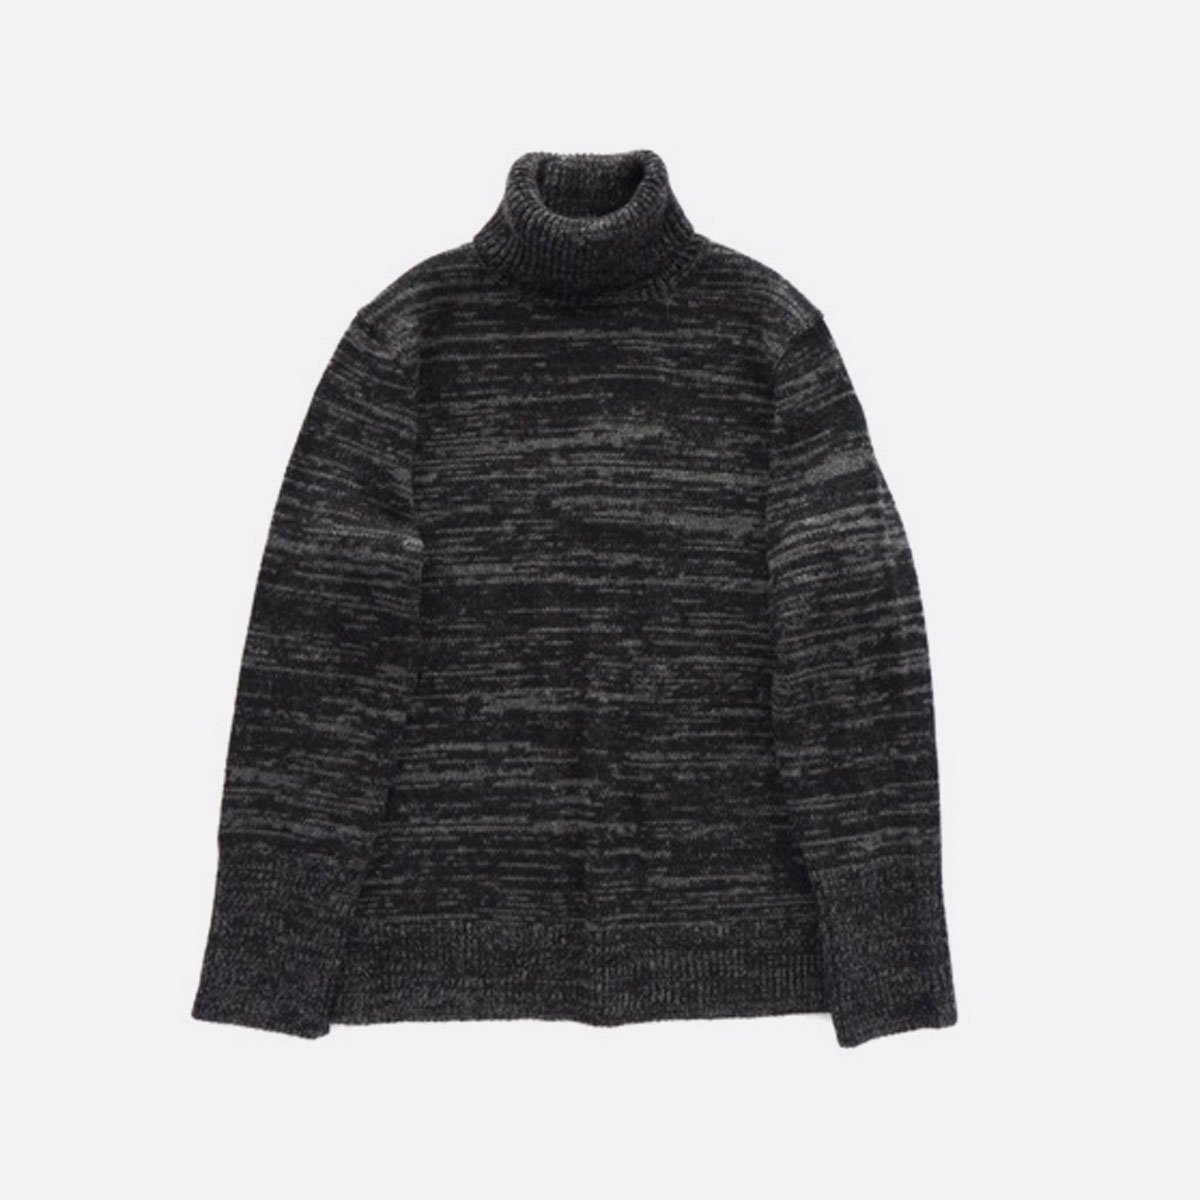 THE INOUE BROTHERS…  Low Gauge Turtle Neck Sweater (Grey)